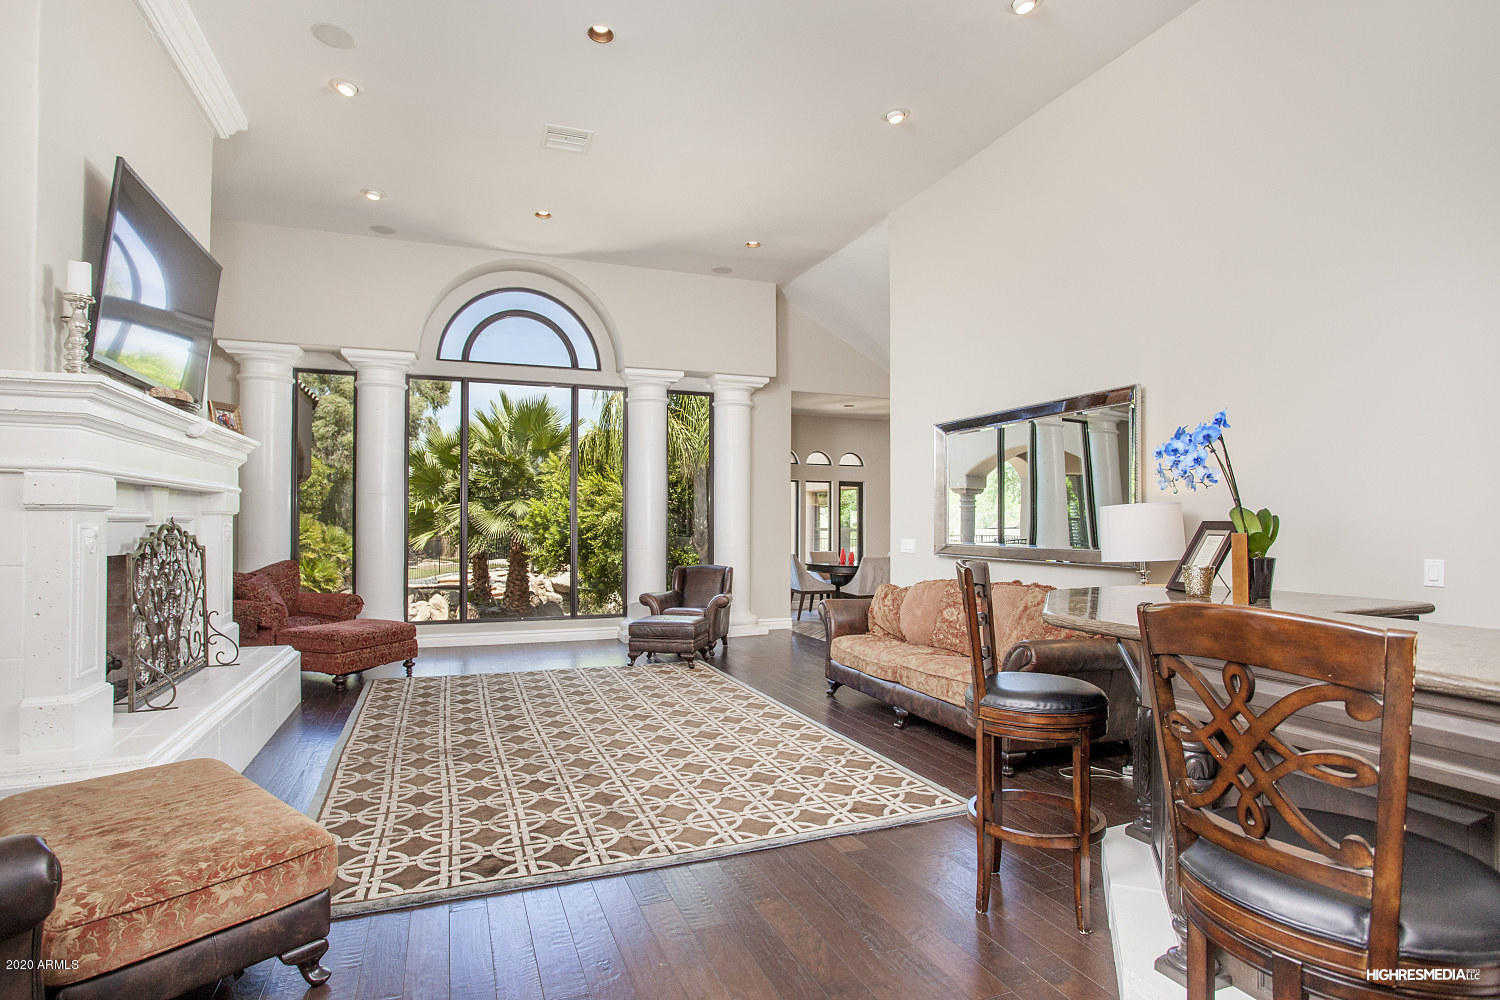 $3,995,000 - 8Br/9Ba - Home for Sale in Heavilins Habitat, Paradise Valley